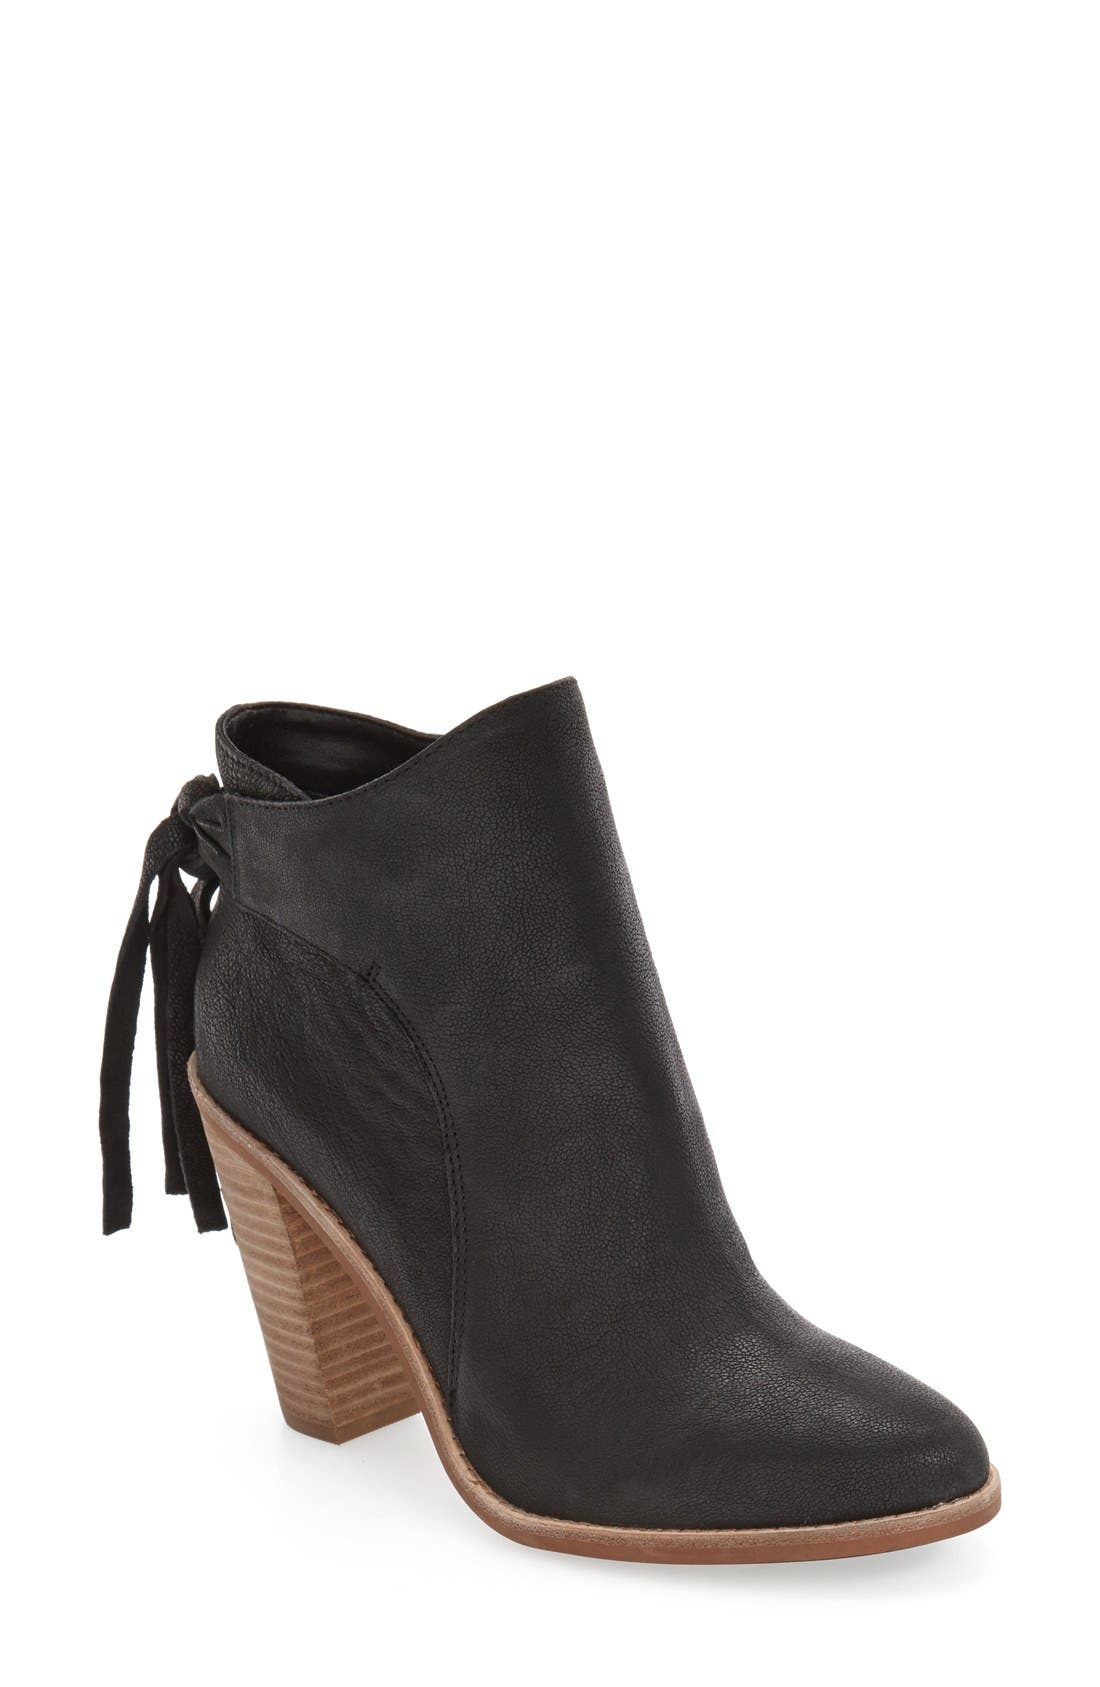 Alternate Image 1 Selected - Vince Camuto 'Linford' Bootie (Women)